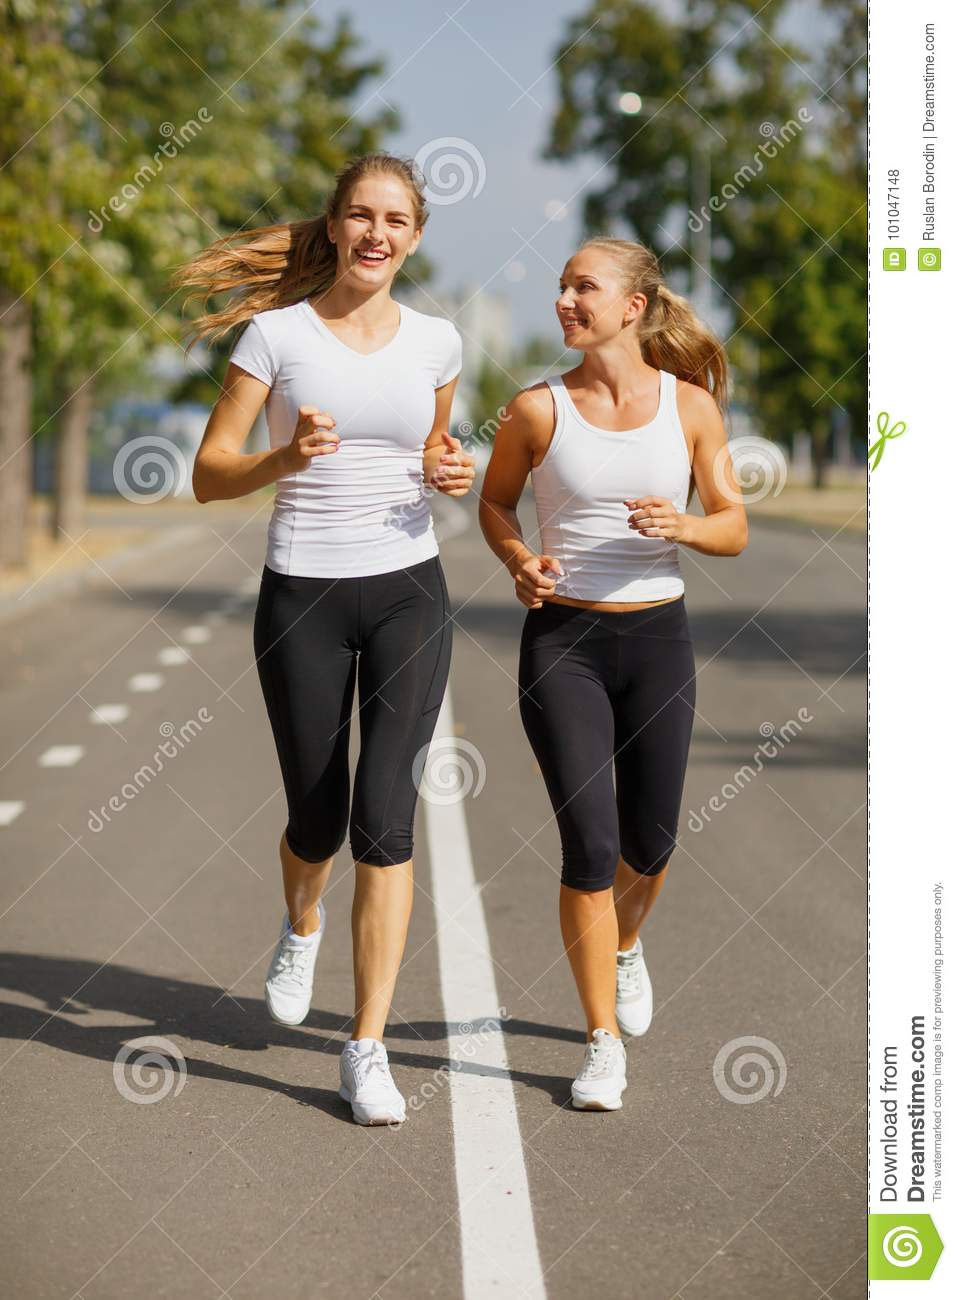 Gorgeous Girls Running On The Blurred Background. Sporty Youth. Morning  Jogging Concept. Stock Photo - Image of funny, lifestyle: 101047148